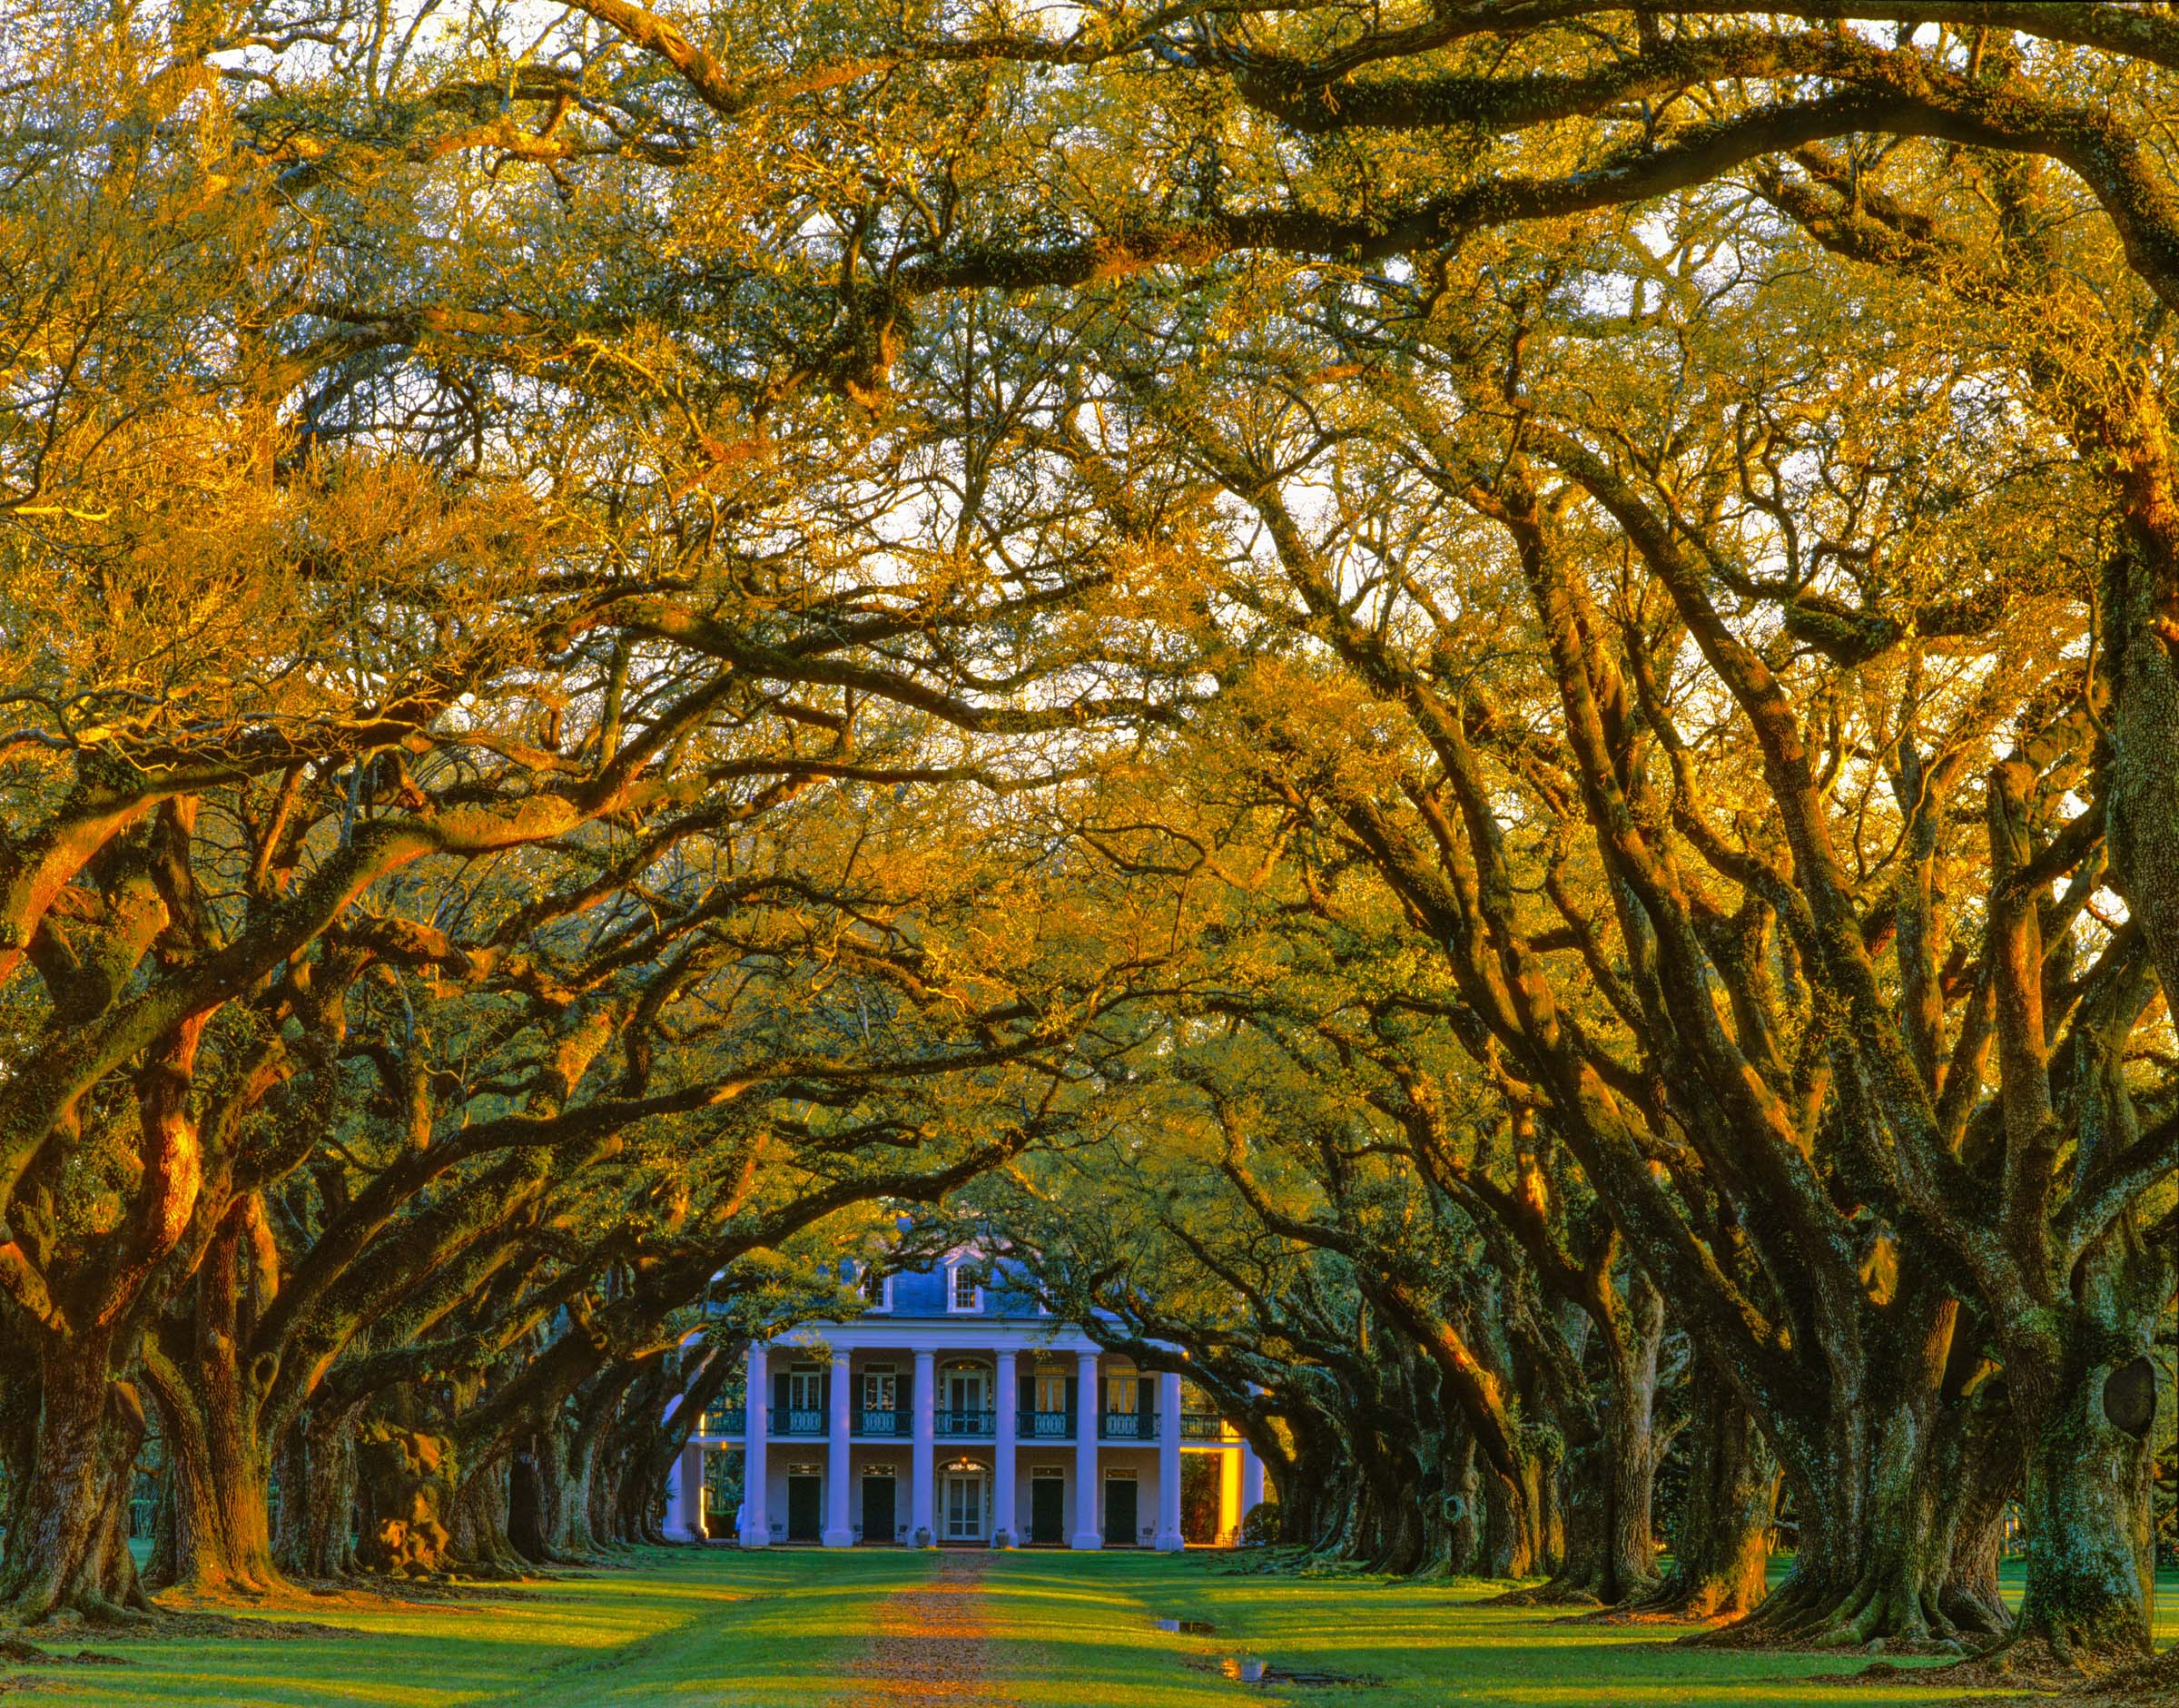 Oak Alley Mansion, Mississippi River, Louisiana, Antebellum Mansion photographed by Tom Till